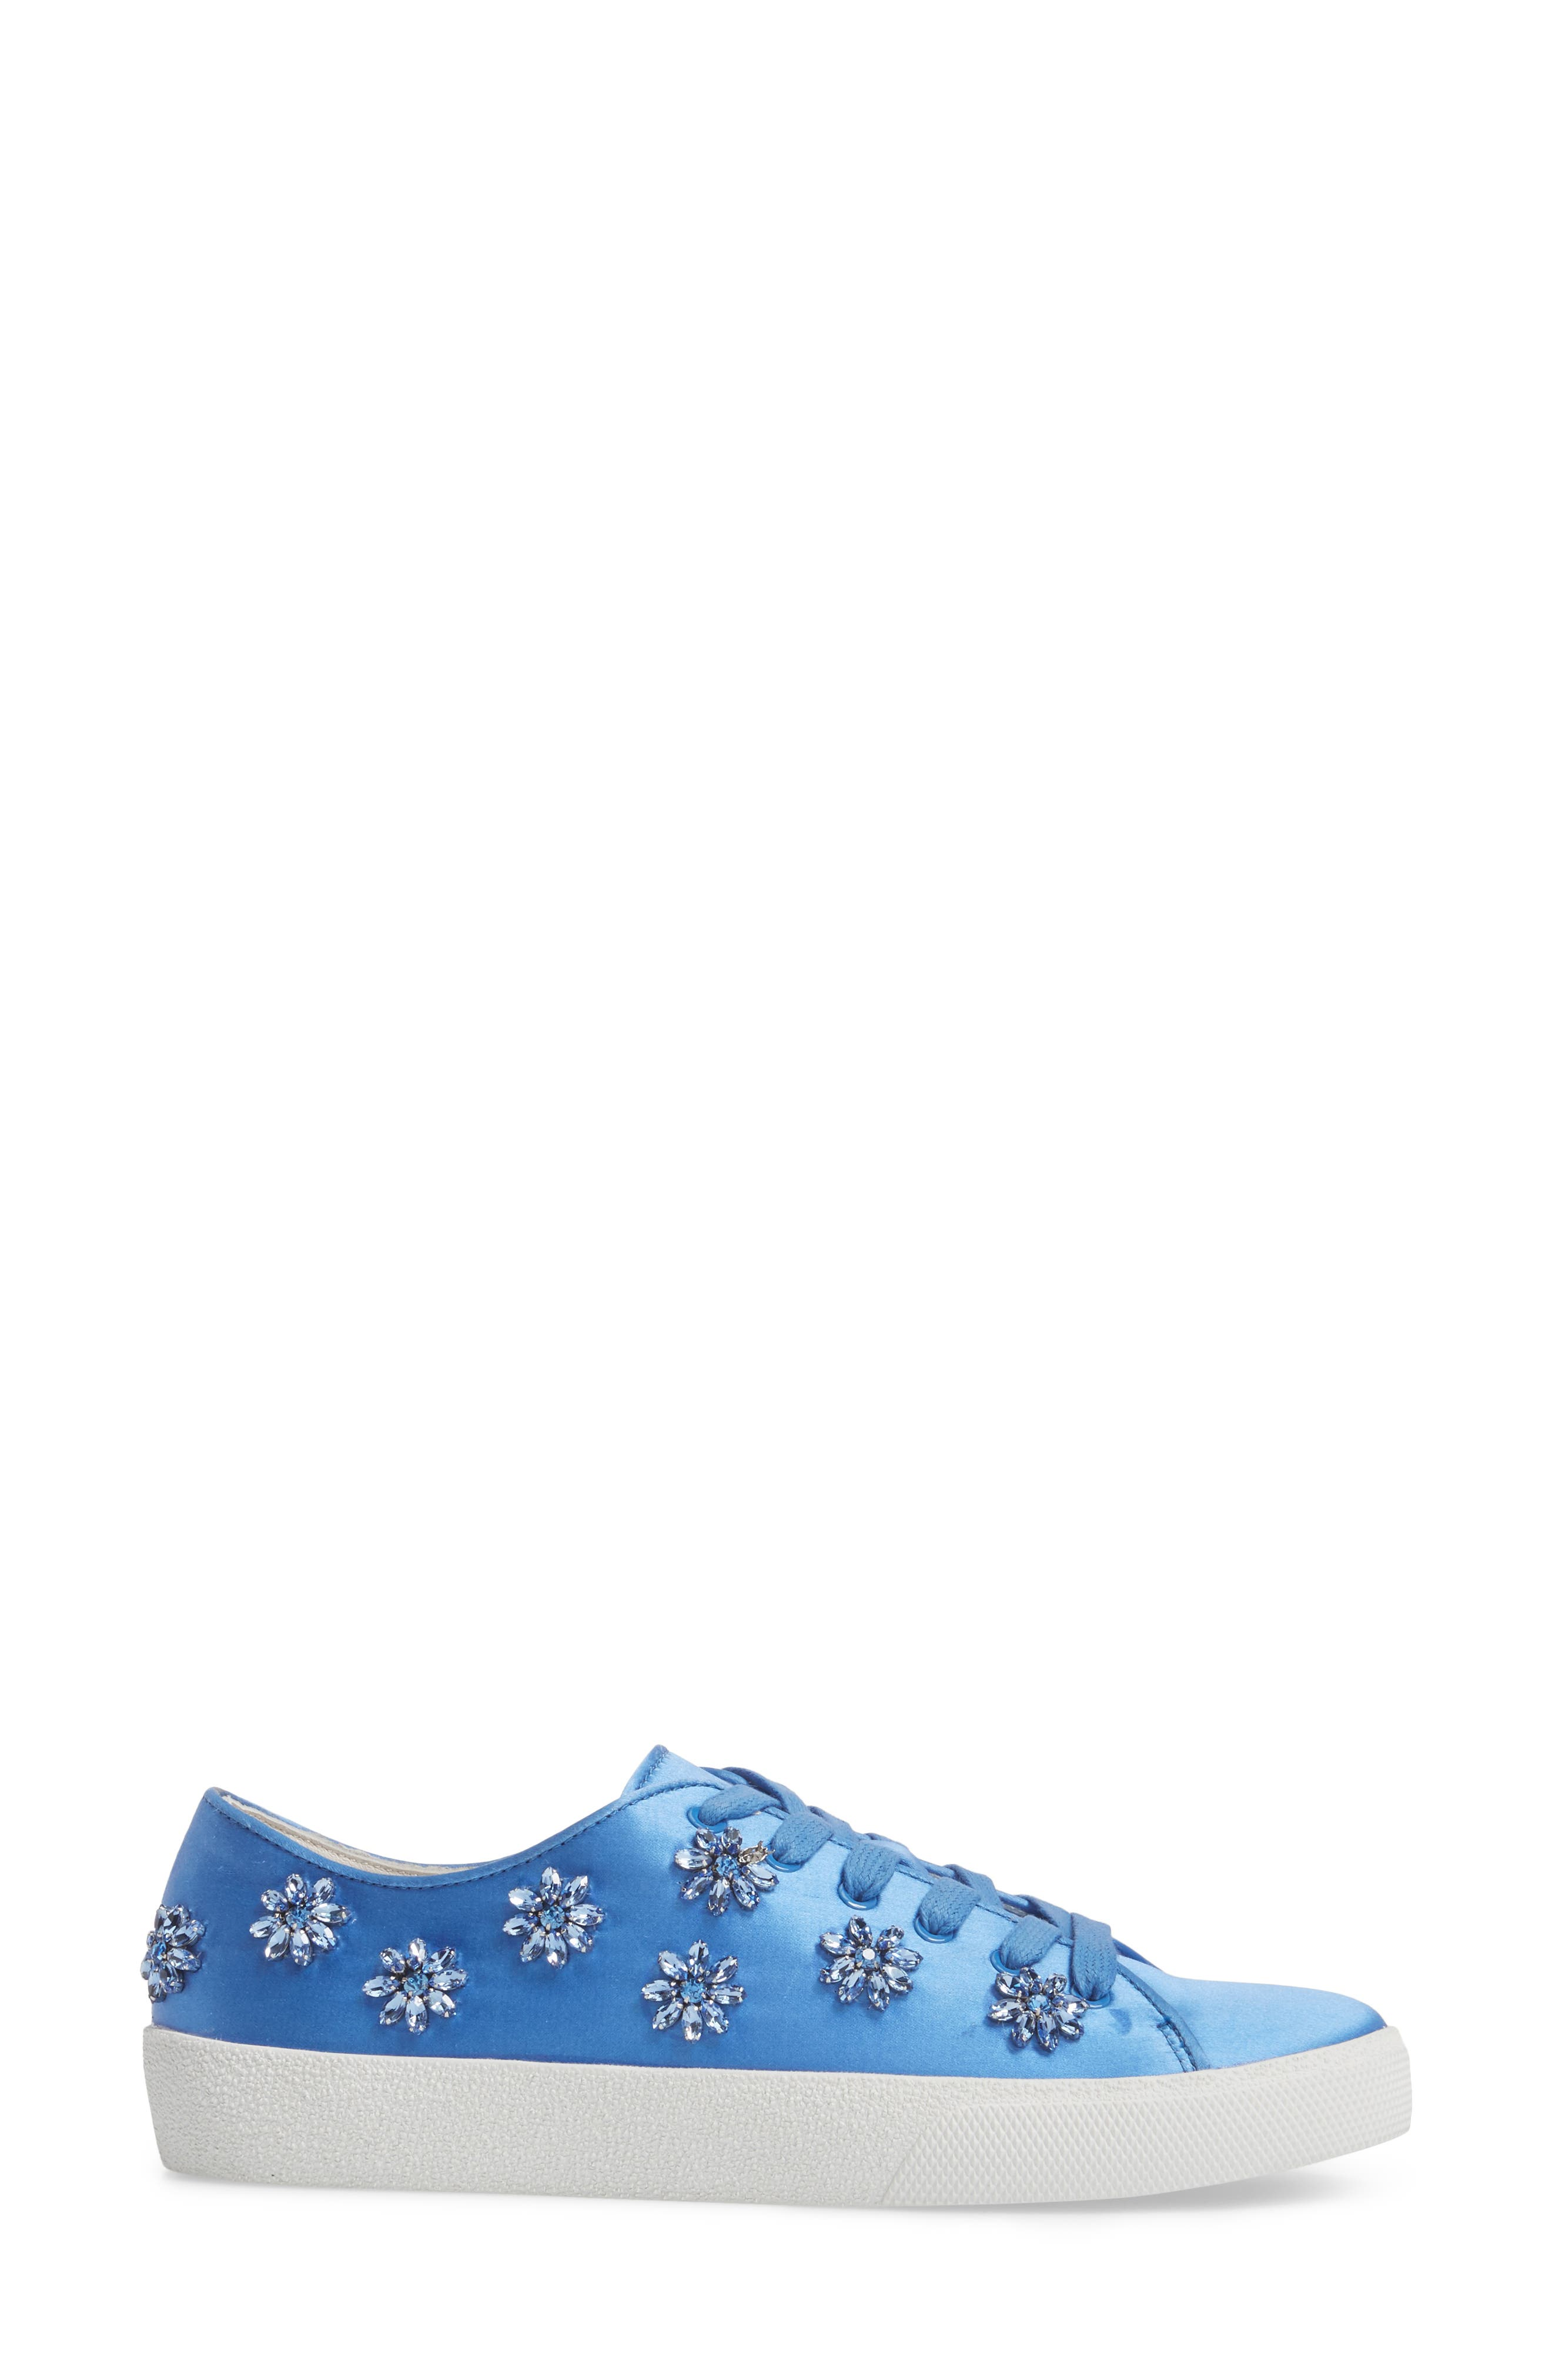 Cleo Crystal Embellished Sneaker,                             Alternate thumbnail 3, color,                             430